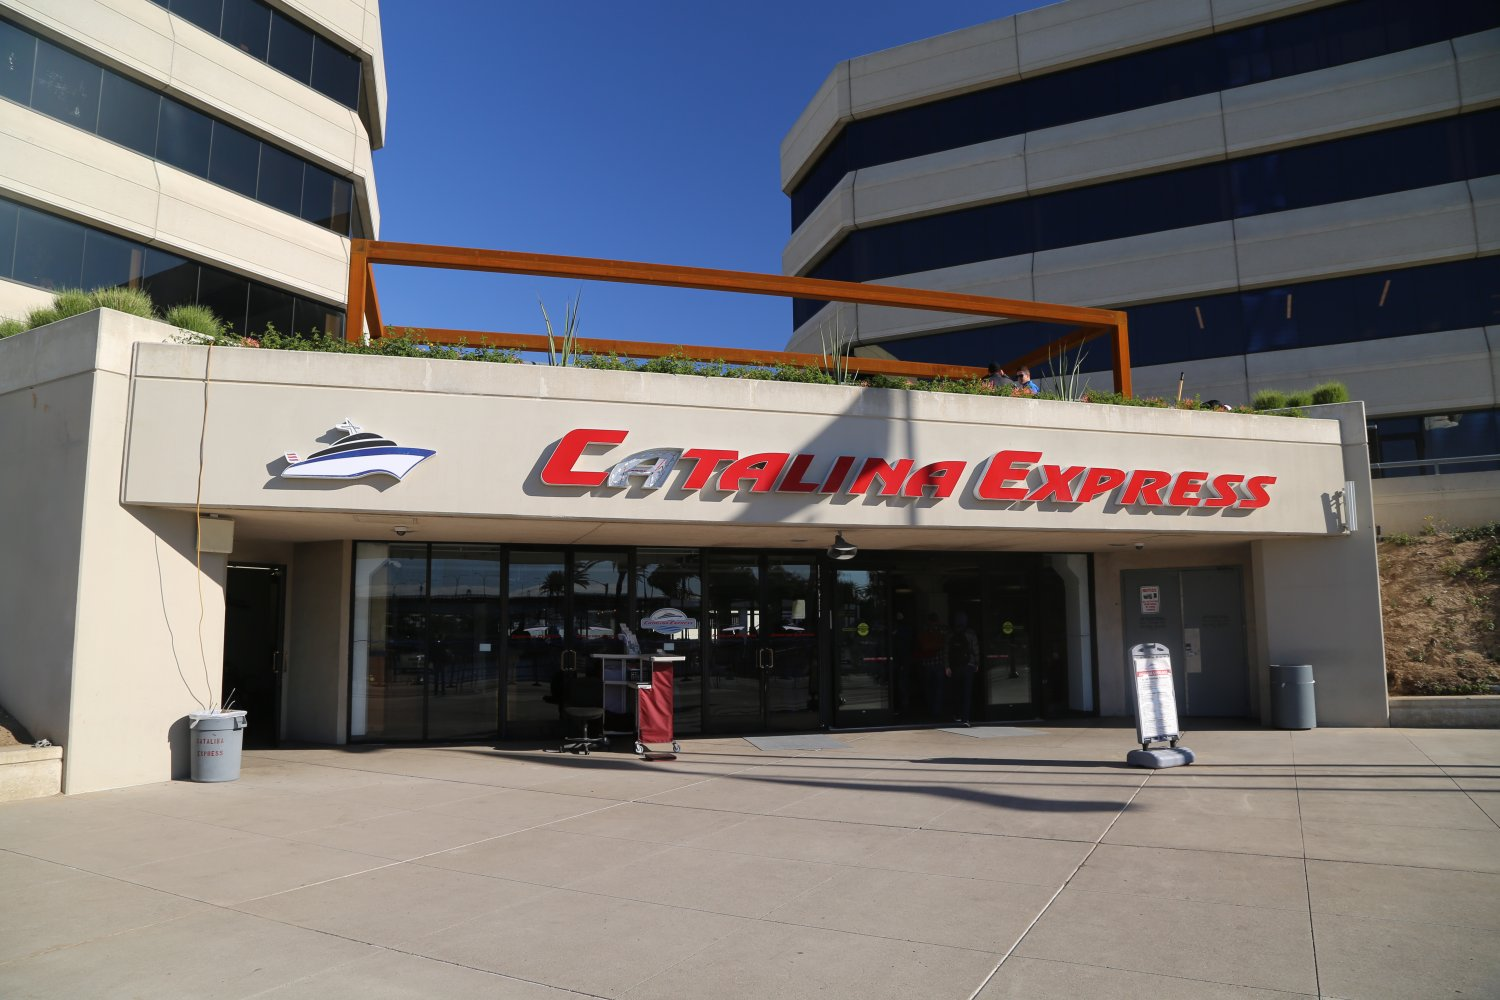 The Catalina Express travel company has been in business for around 30 years, running regular trips to Catalina Island, more than 30 a day, in fact.